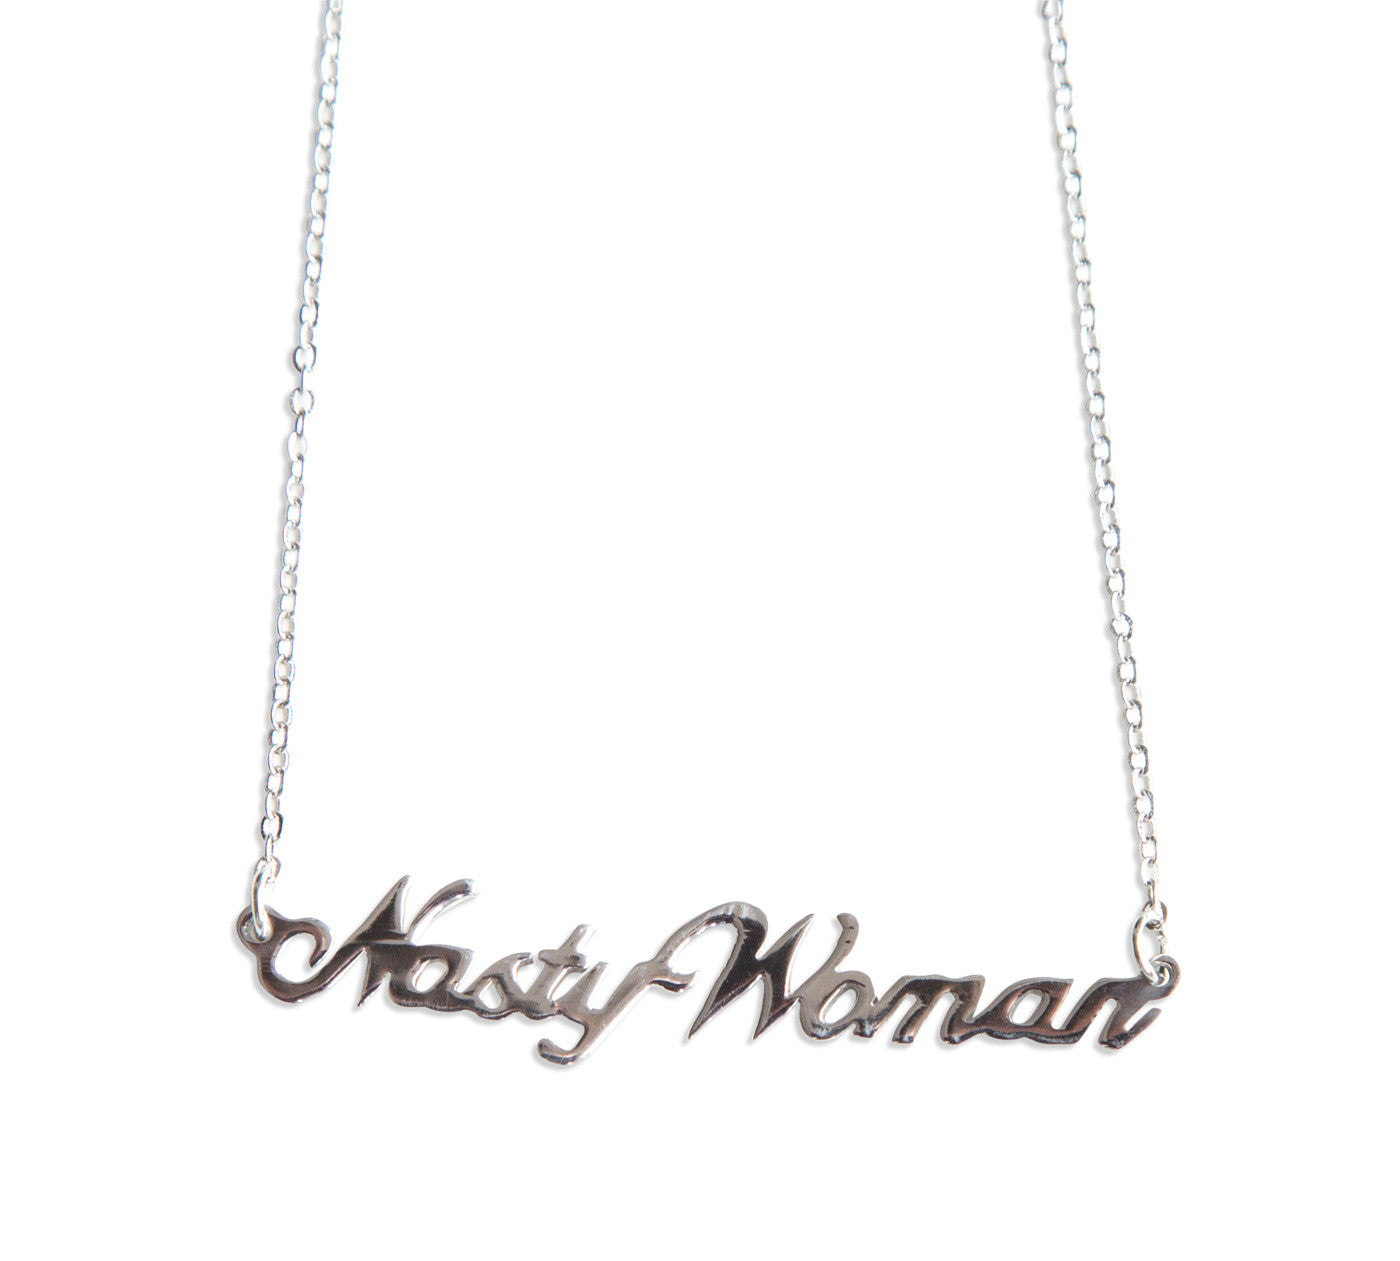 Nasty woman script necklace pendant by well done goods nasty woman silver script necklace pendant by well done goods aloadofball Image collections